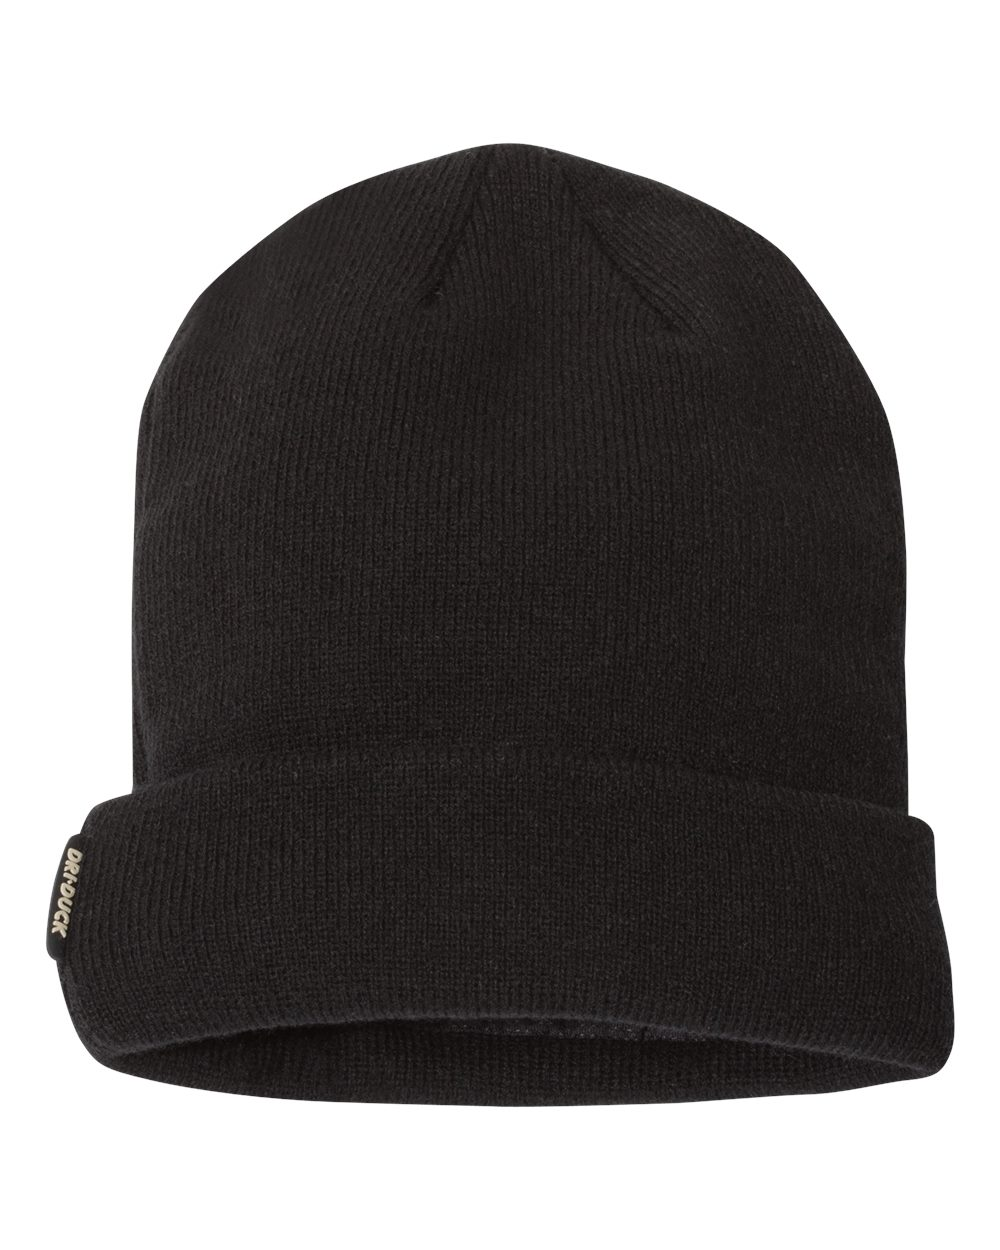 DRI DUCK 3562 - Basecamp Performance Knit Beanie